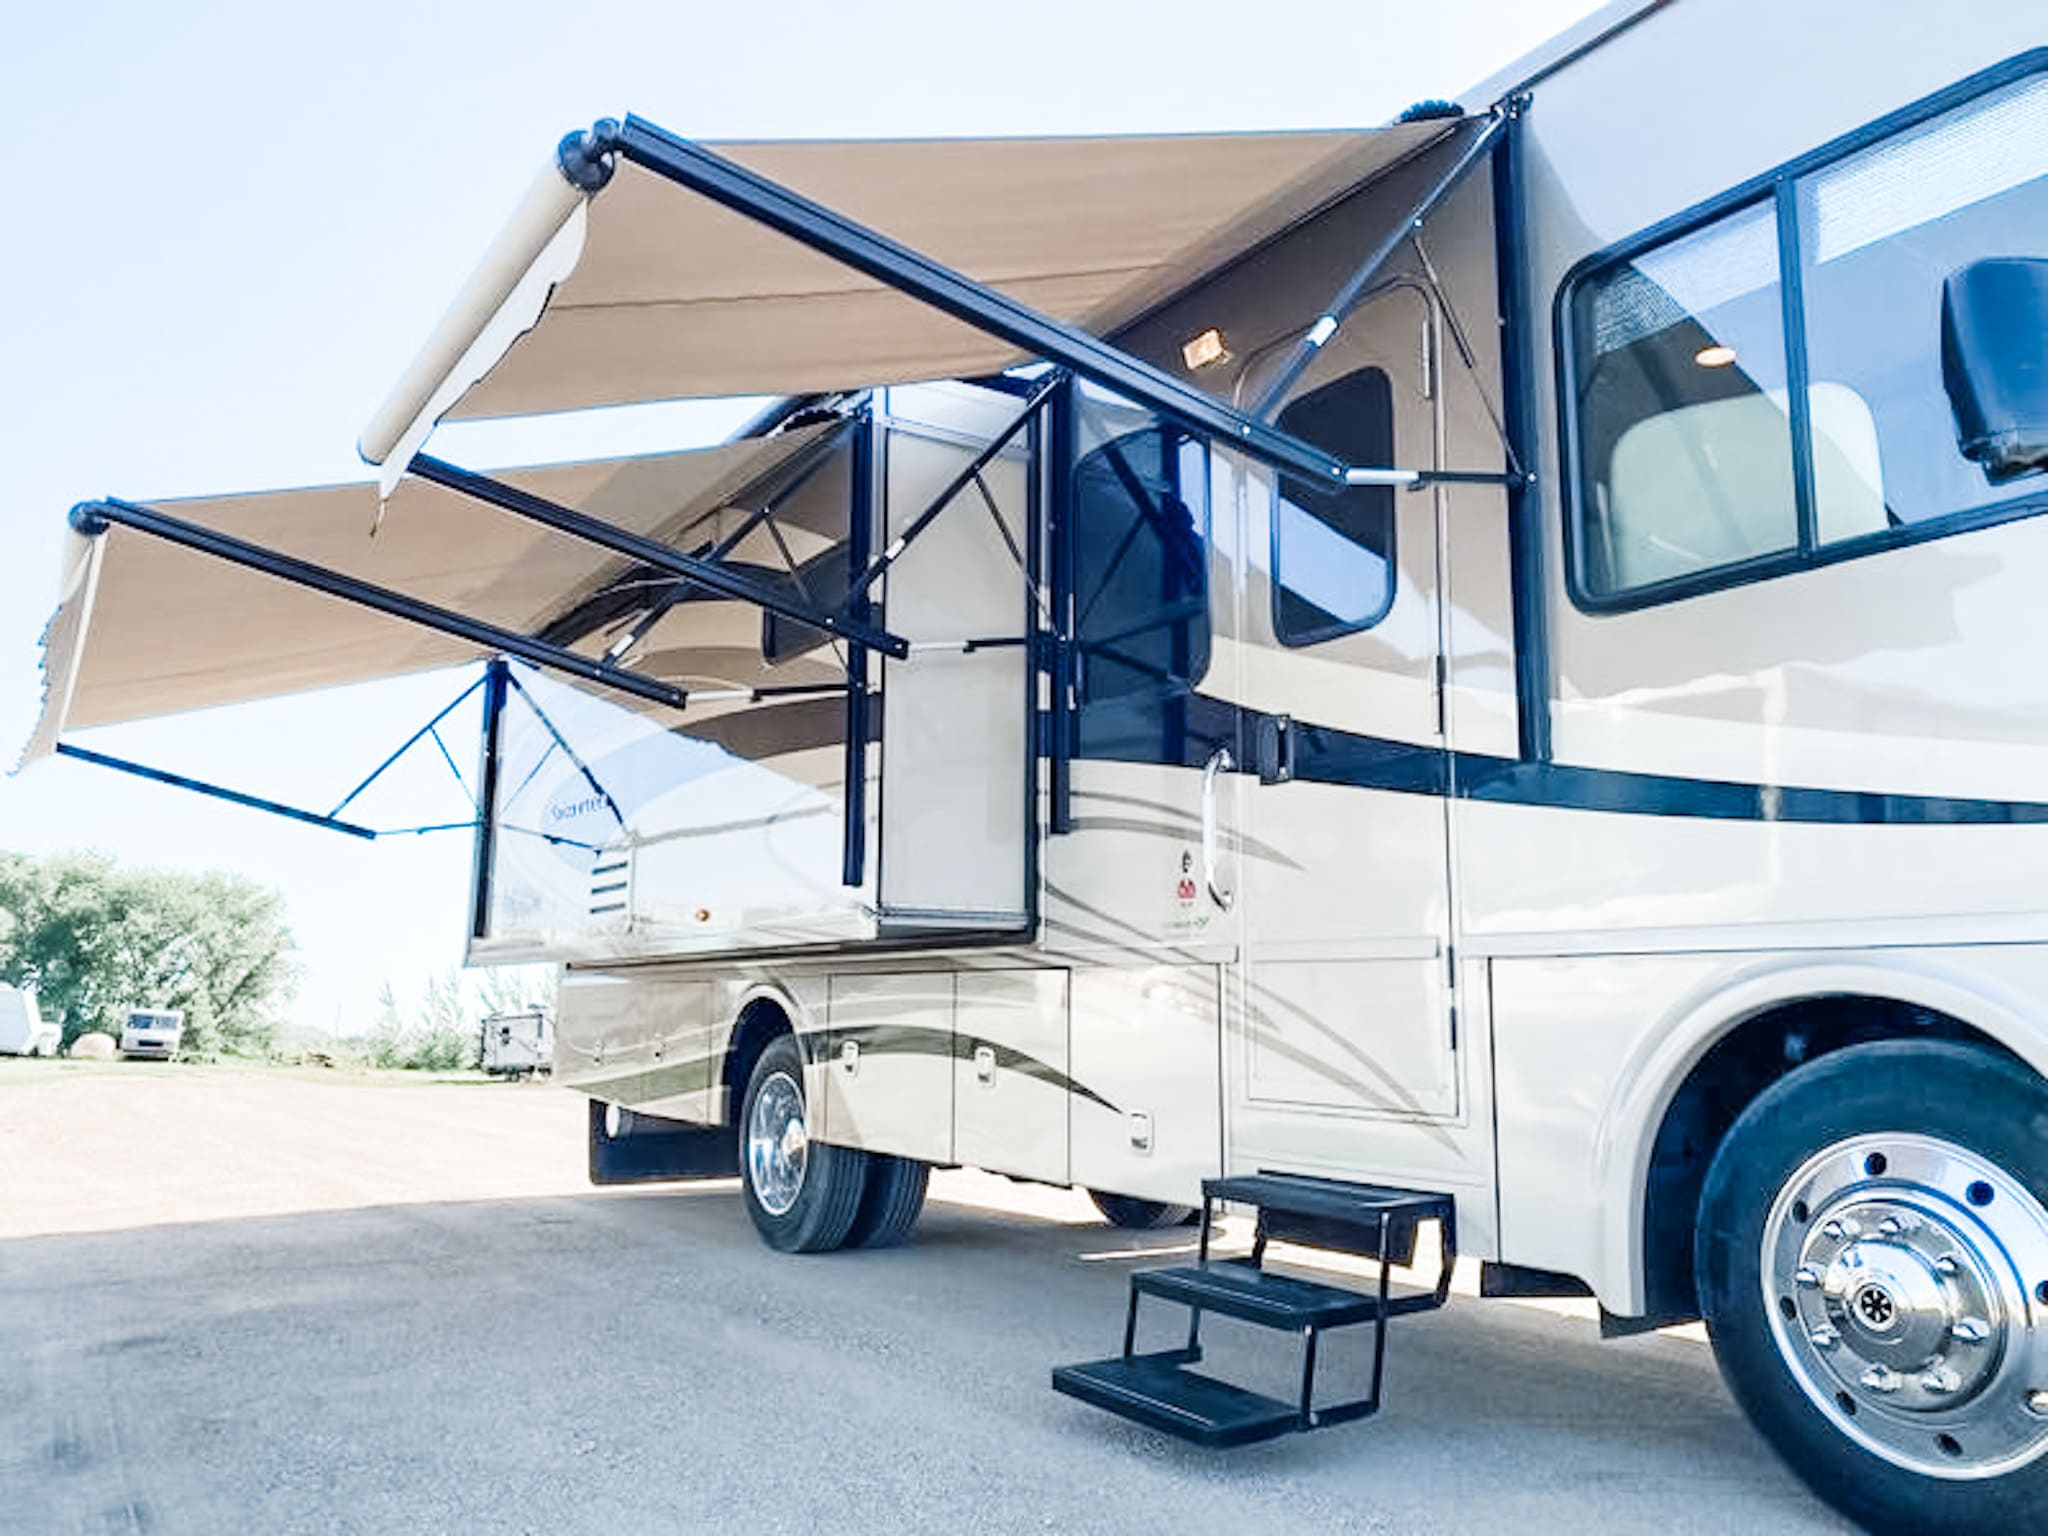 Enjoy instant shade with the double automatic awnings. Also great in light rains if you have an outside picnic table at your RV spot. . Winnebago Sightseer 2013